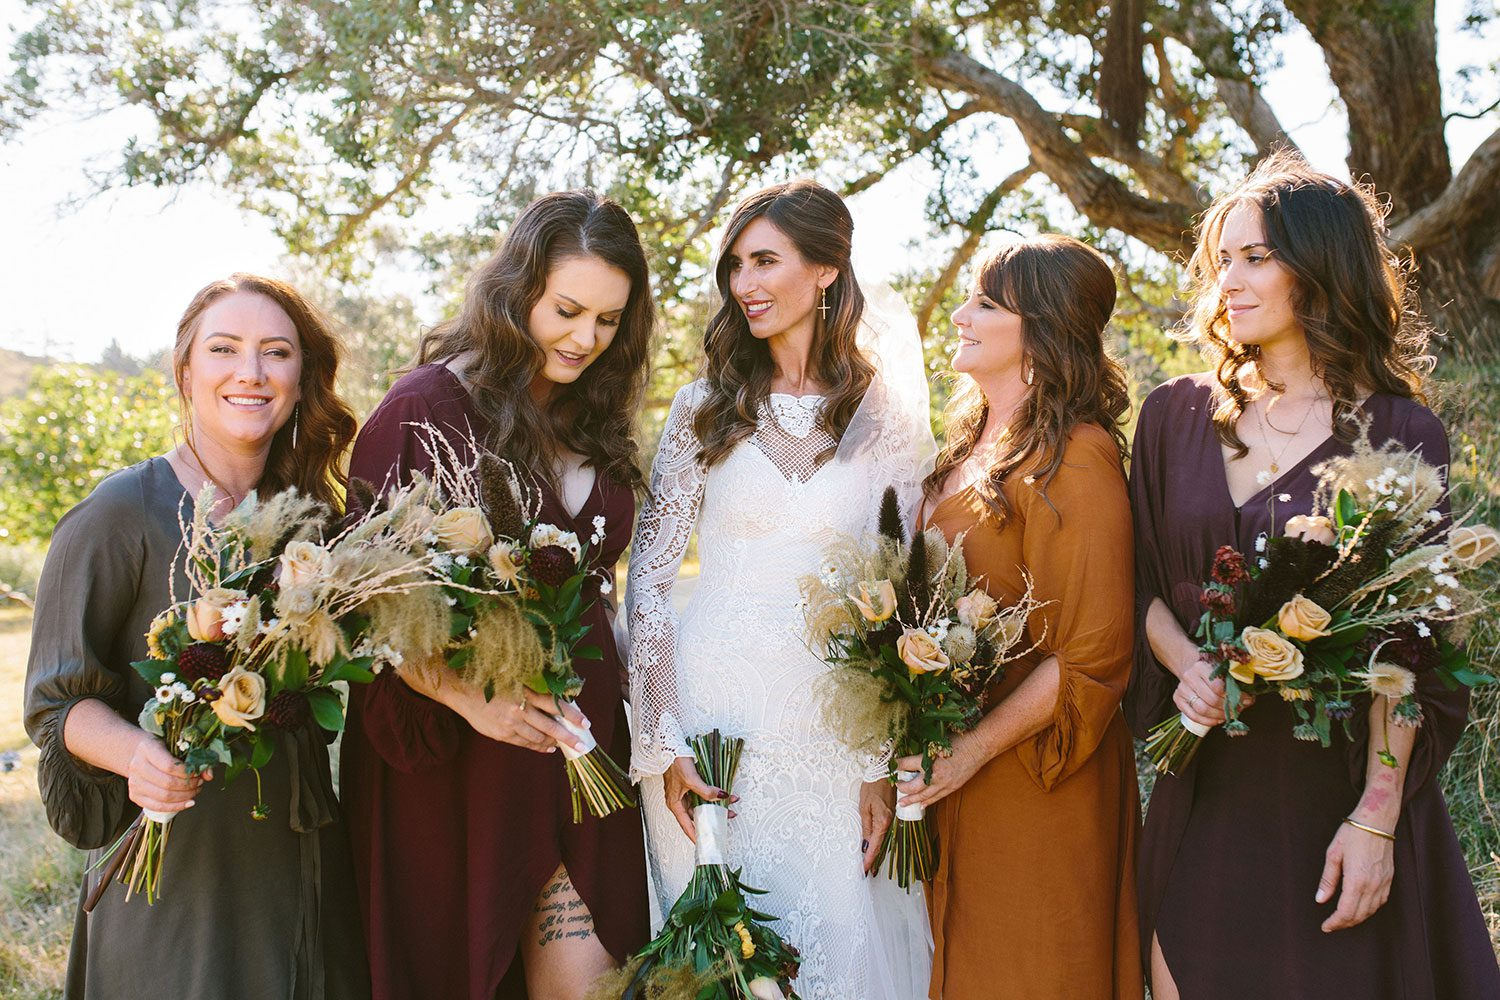 Bride wearing Sabine wedding gown by Auckland wedding dress maker Vinka Design, with French crochet lace detail and long sleeves - with bridesmaids